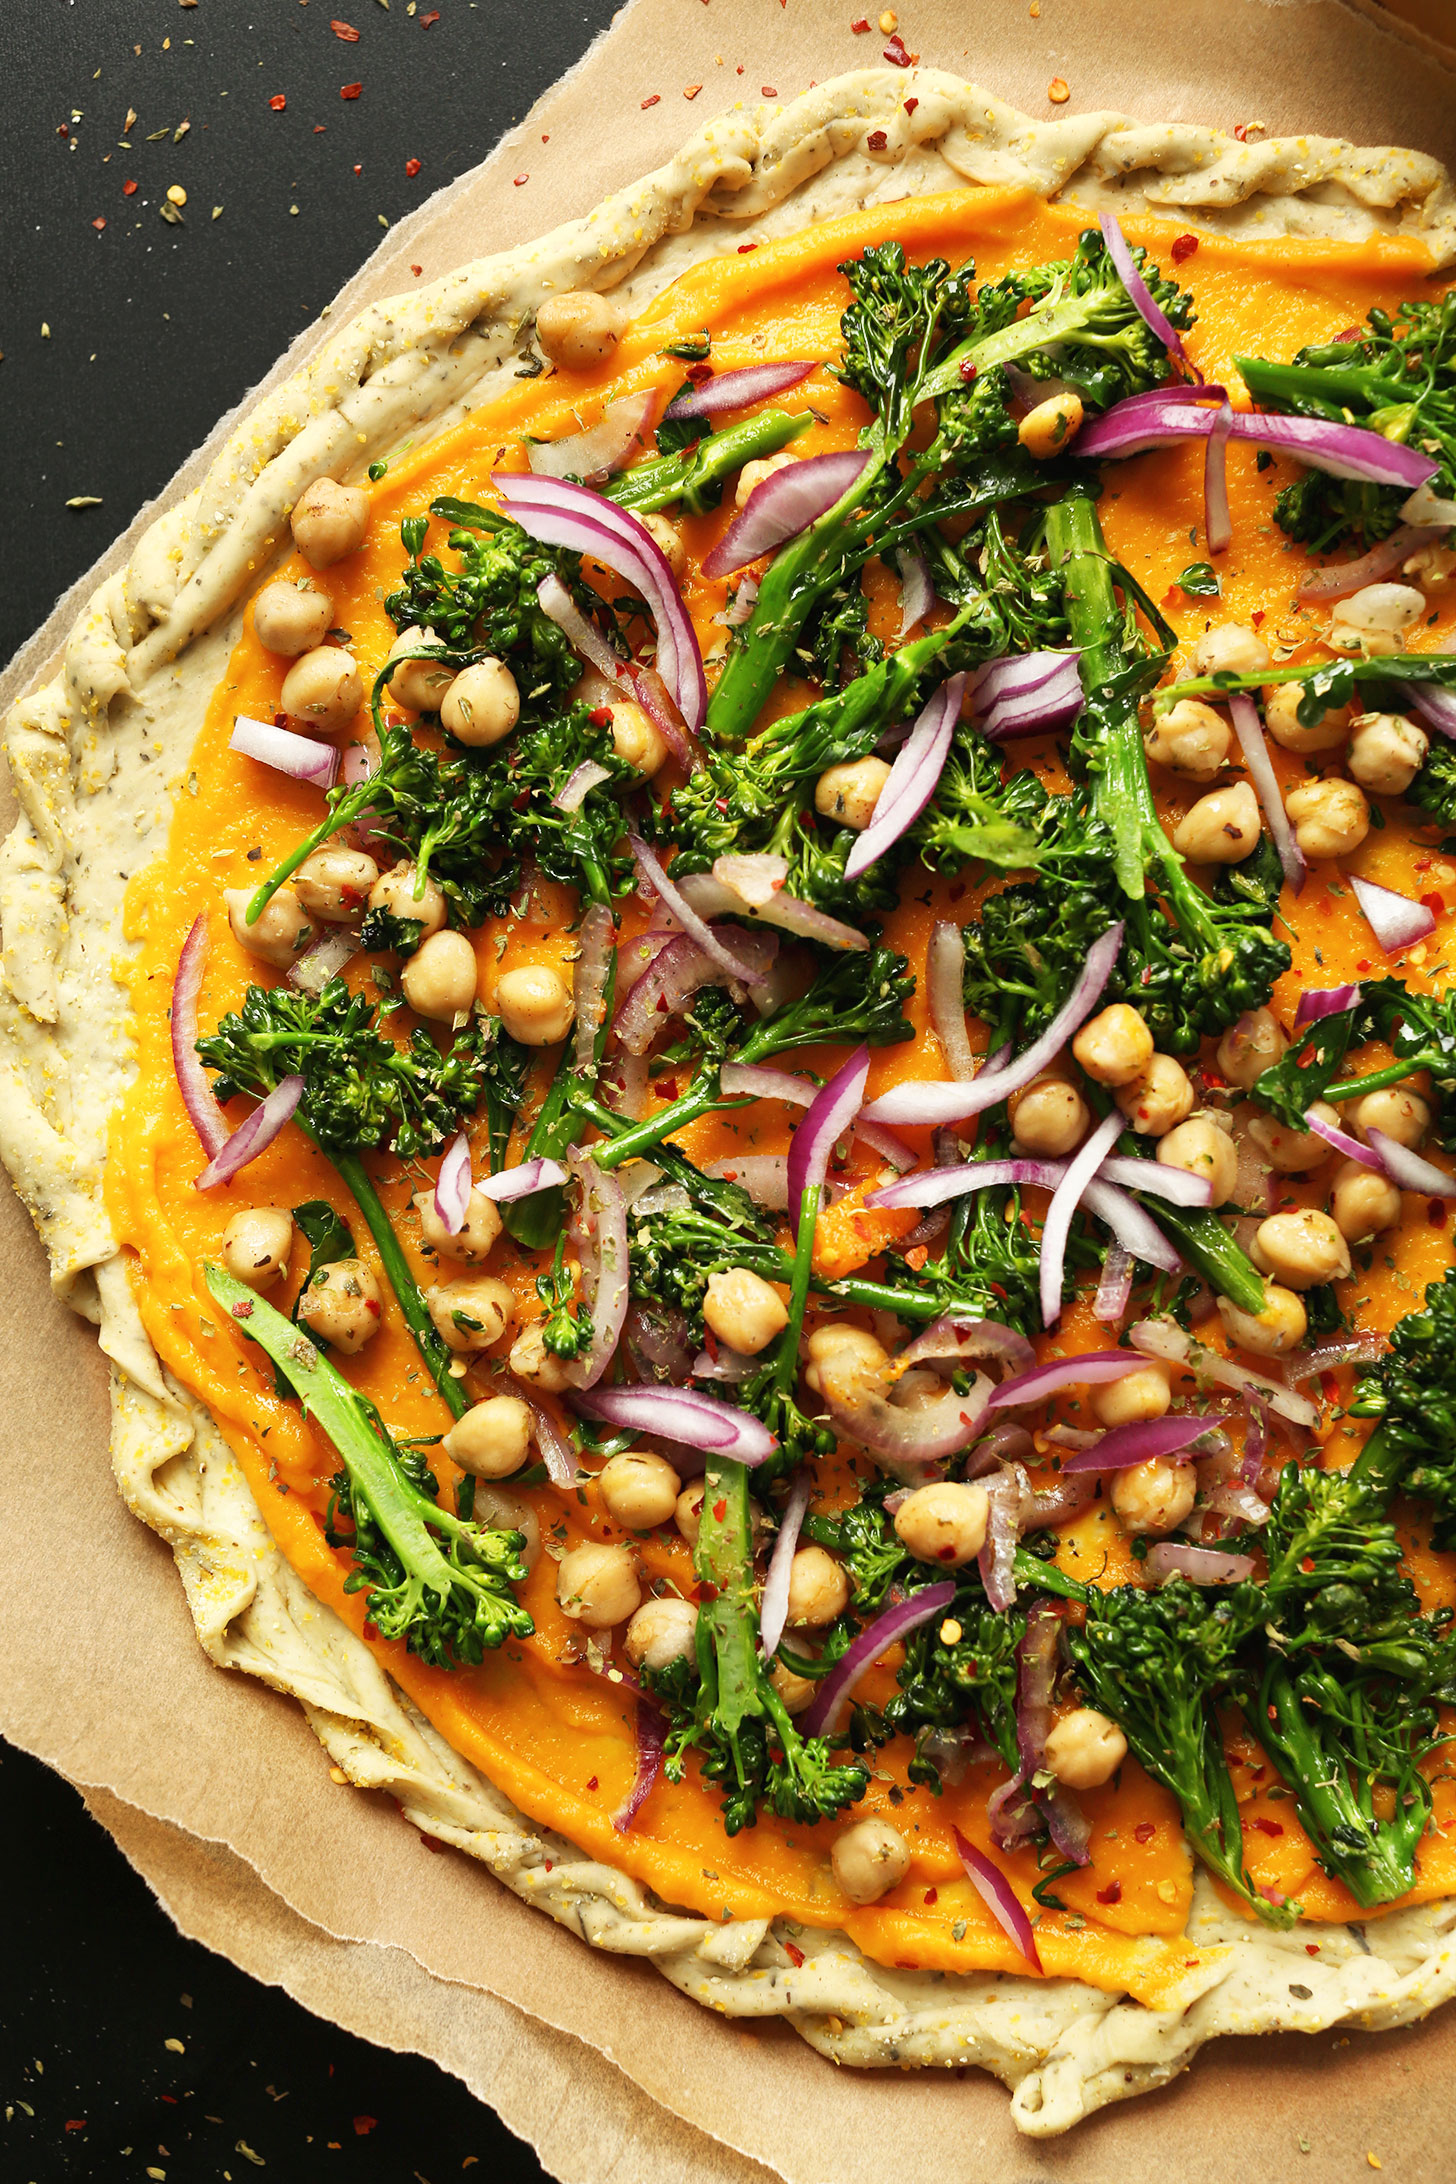 Whole pie of our amazing vegan Butternut Squash and Vegetable Pizza